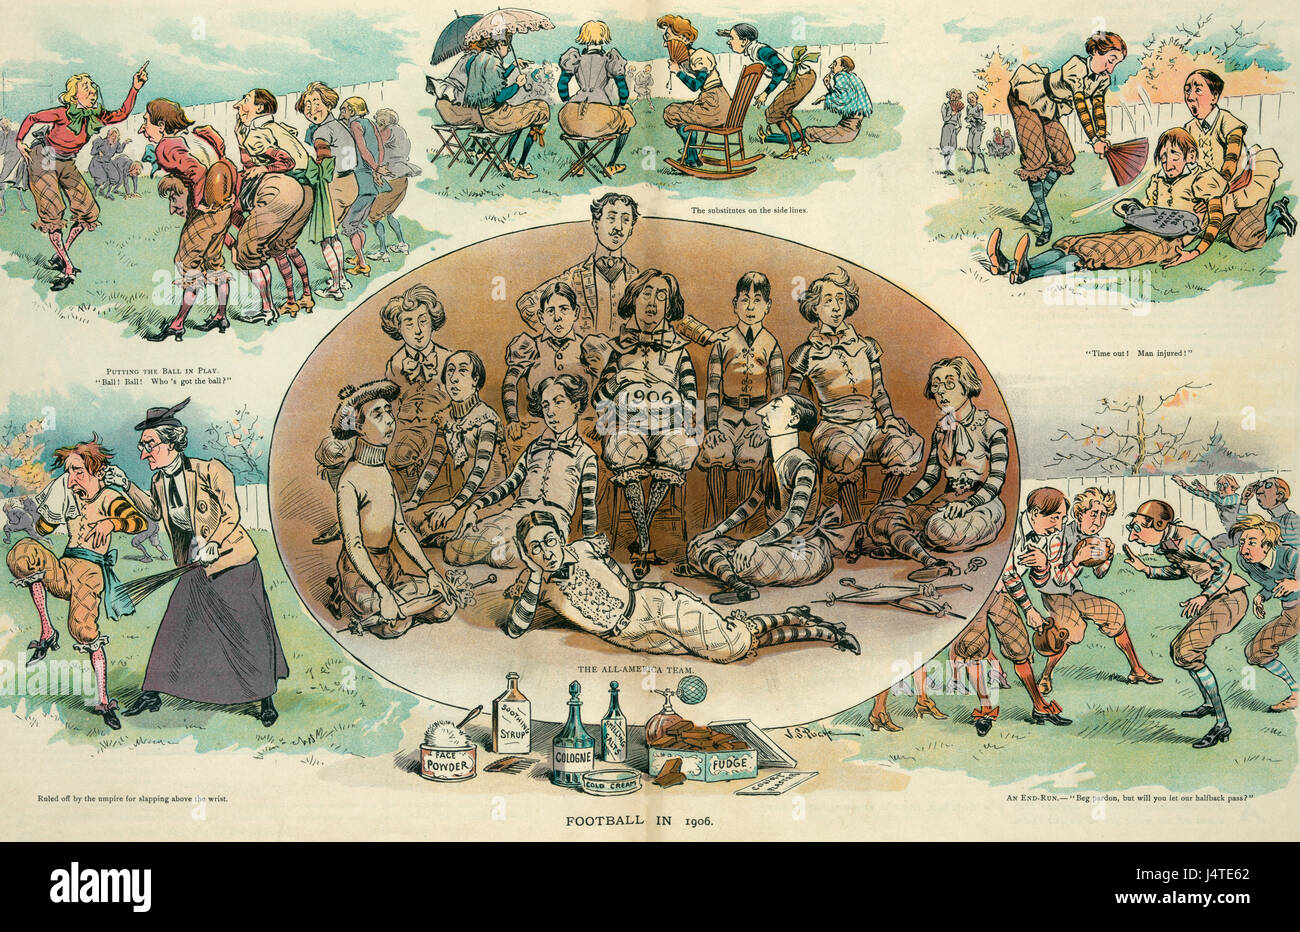 Football in 1906 -  Illustration shows a lighthearted look at the game of football as though it were played by dainty - Stock Image